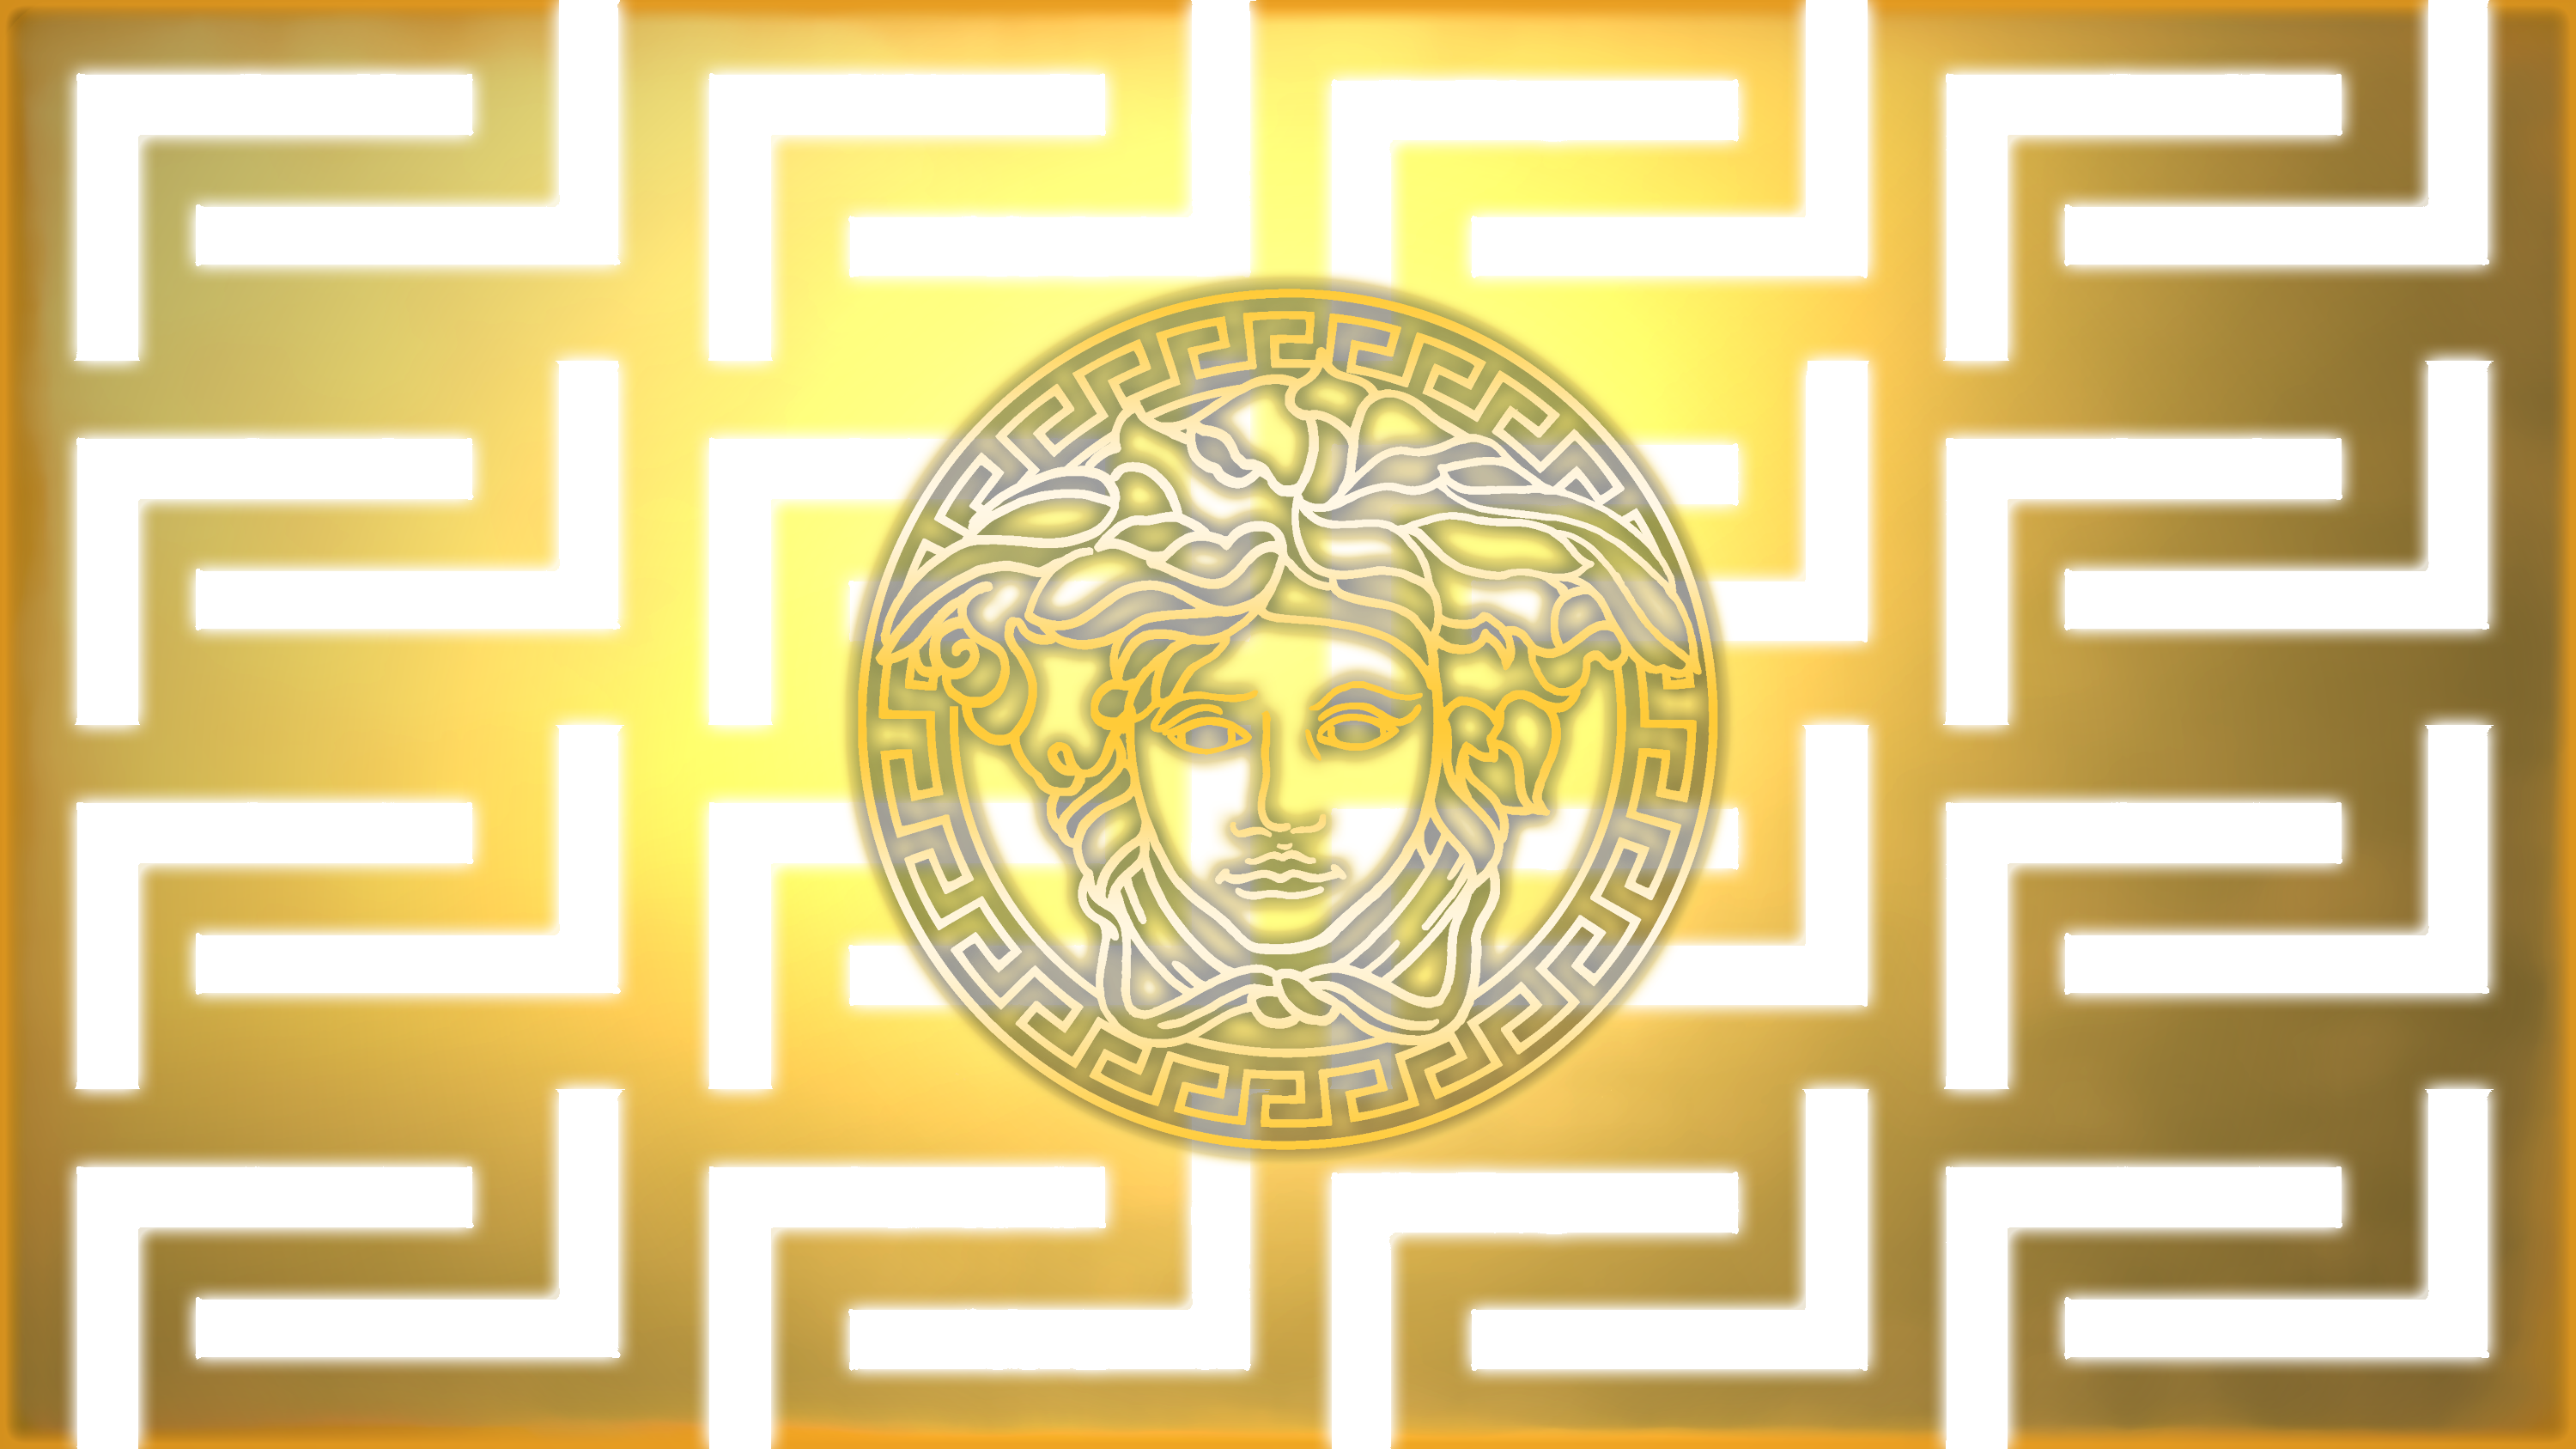 versace wallpaper by thacreator23 customization wallpaper vector 2014 3000x1687